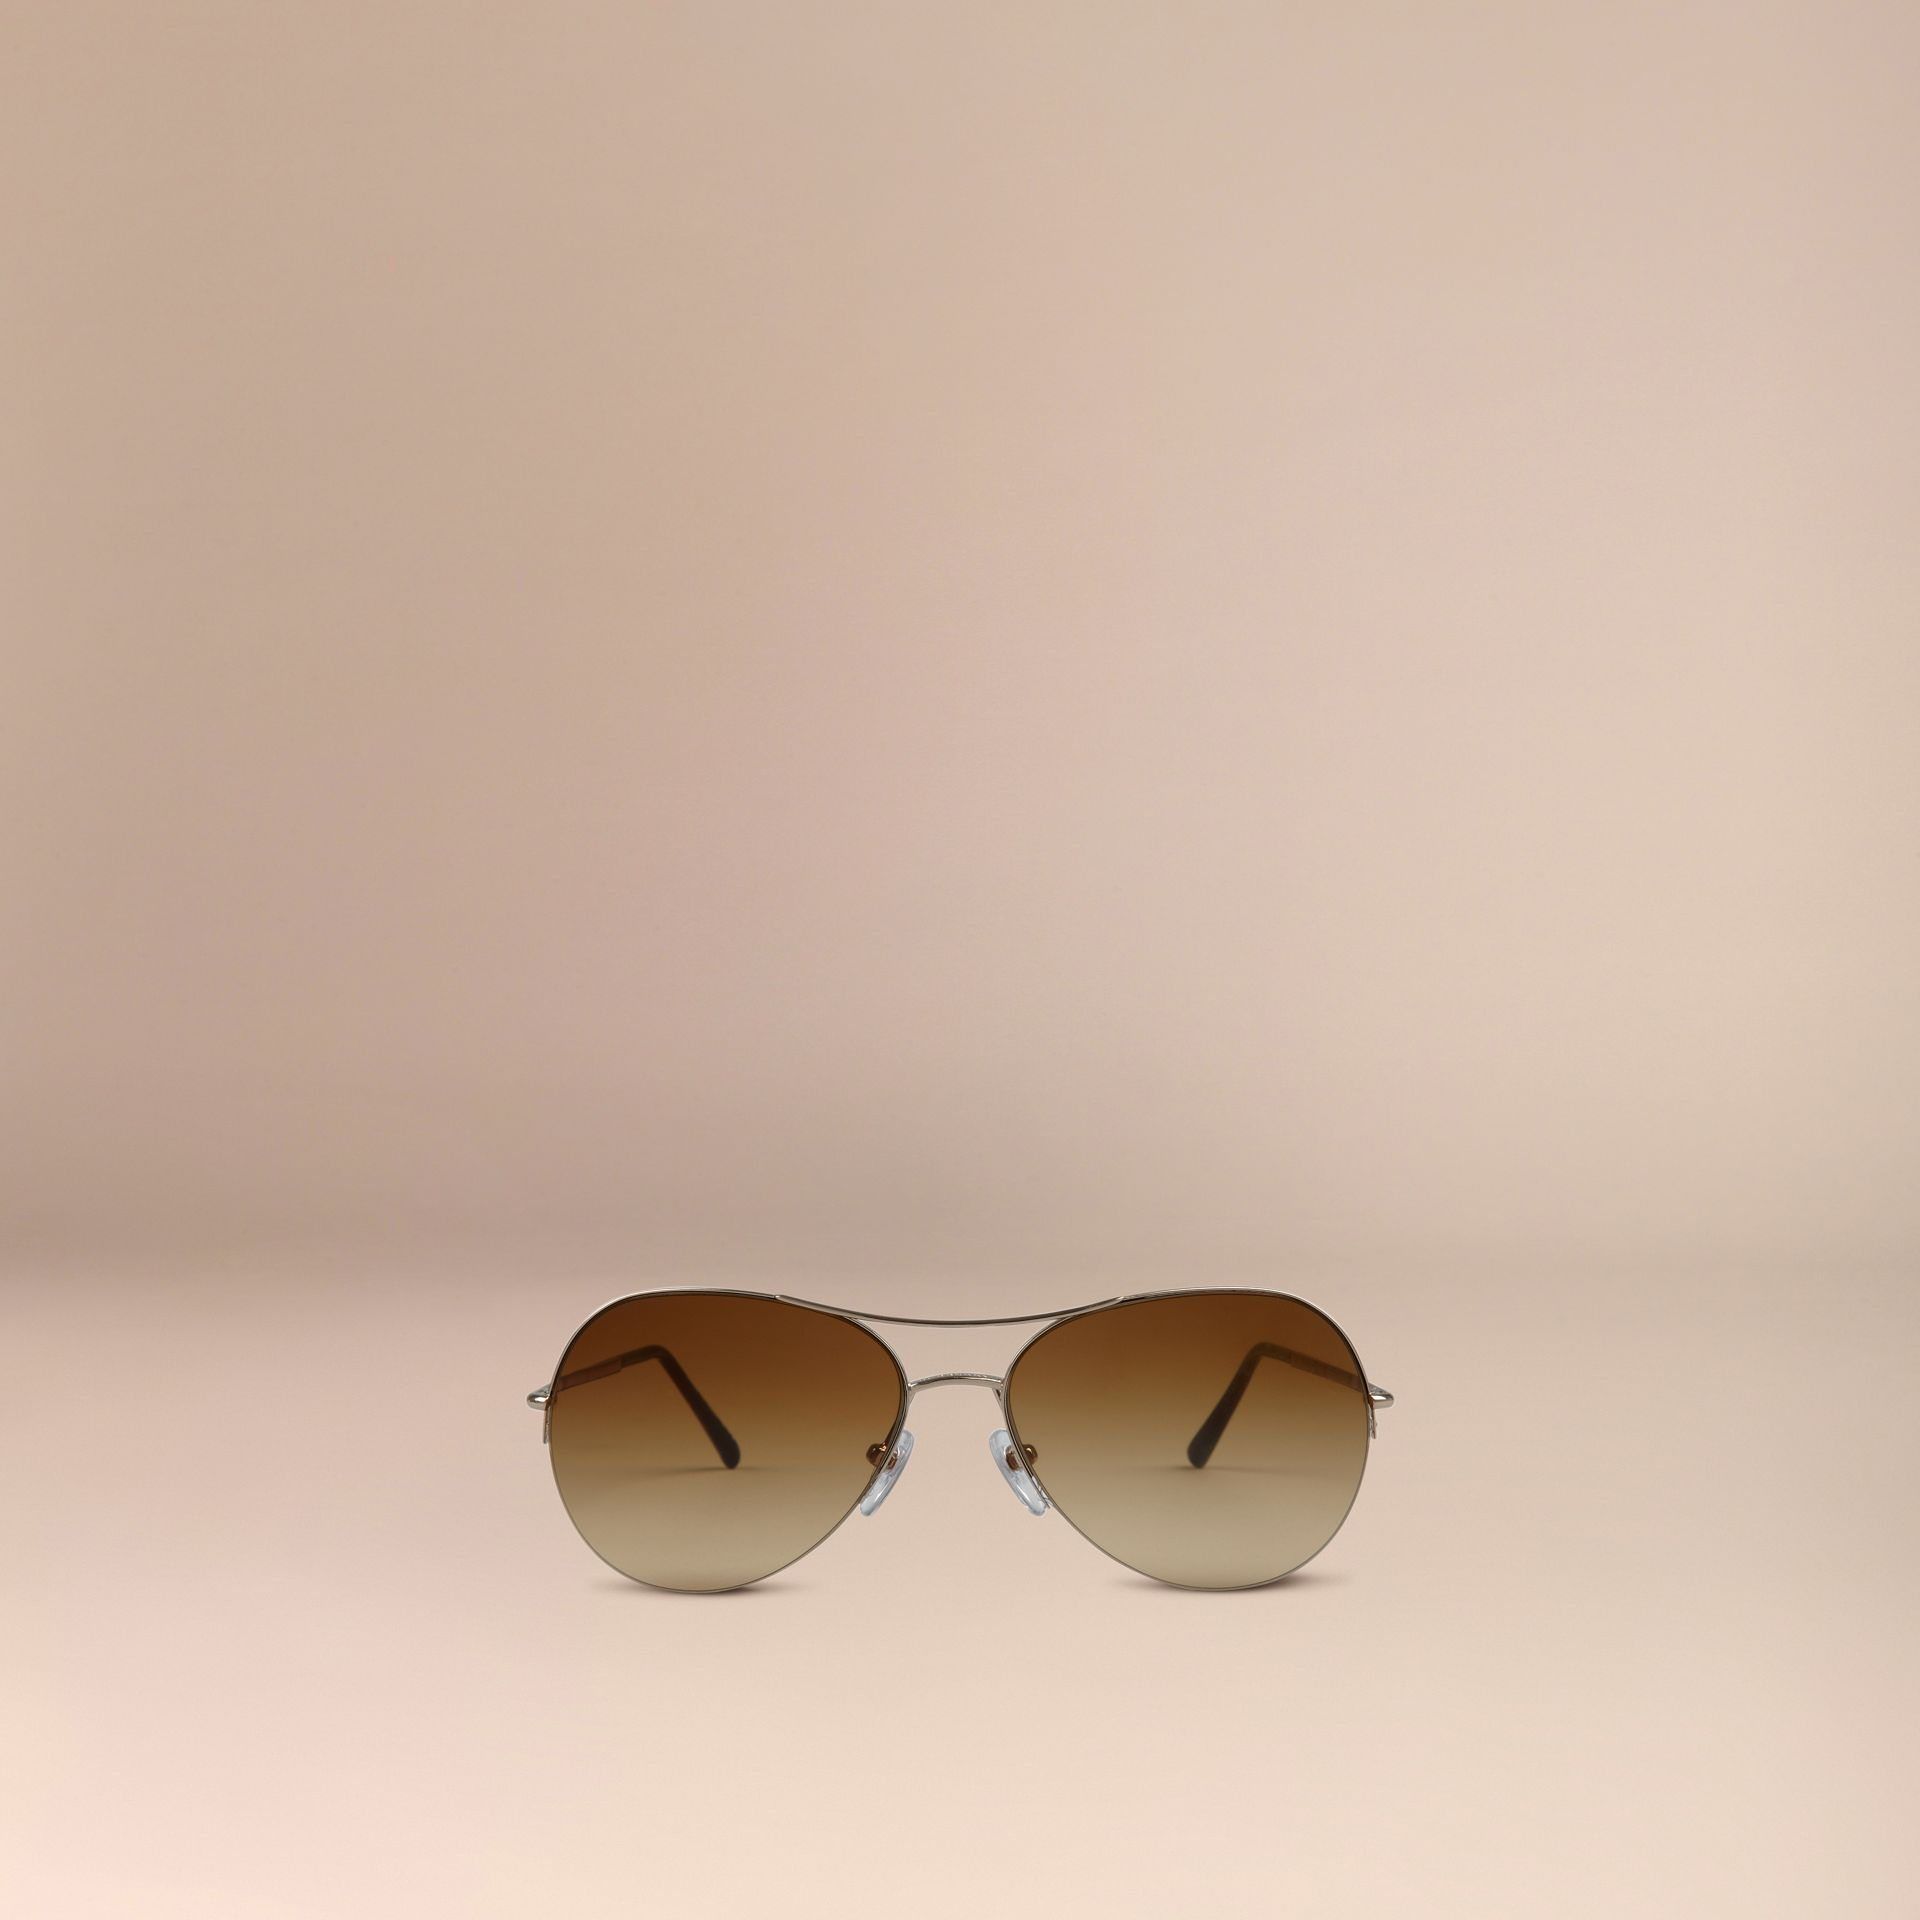 Half-Frame Pilot Sunglasses in Pale Gold - Women | Burberry Australia - gallery image 2